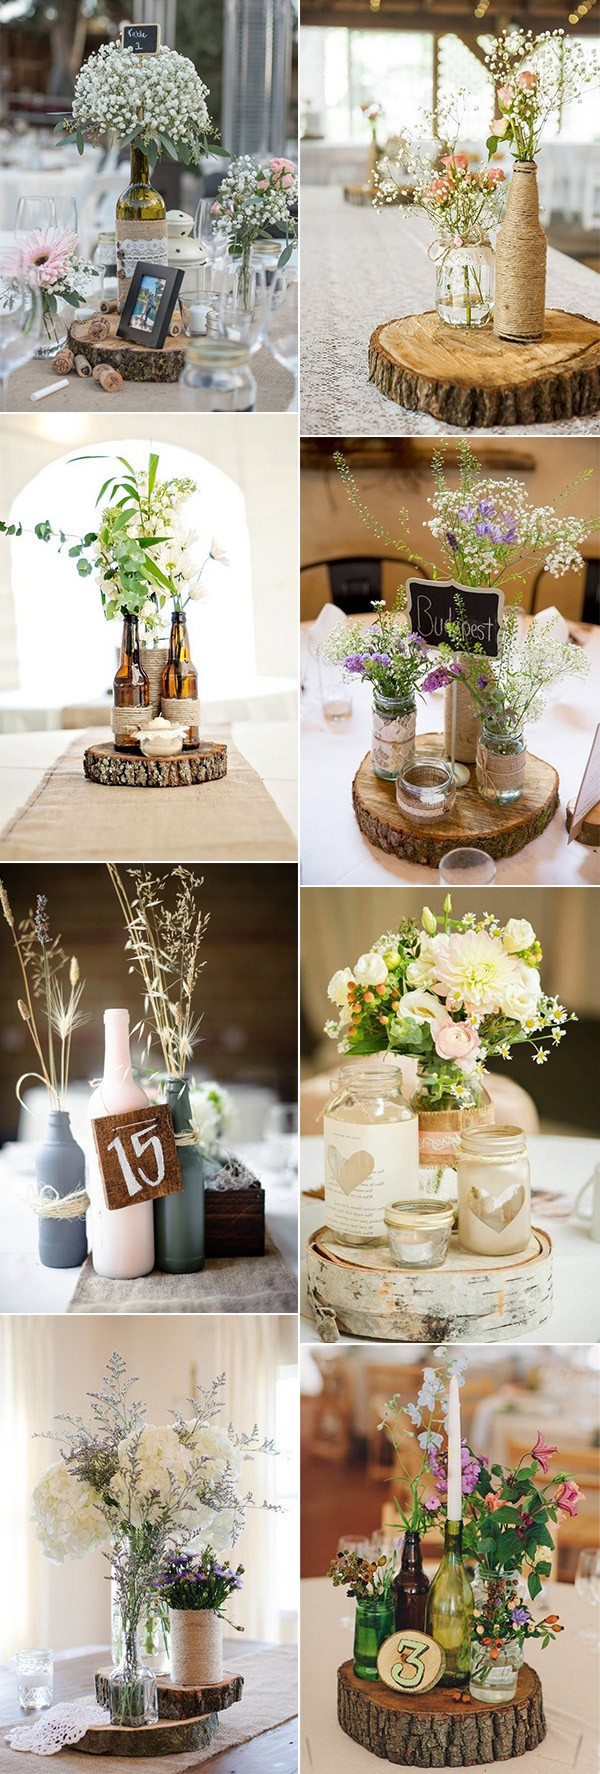 rustic chic wine bottles wedding centerpiece ideas